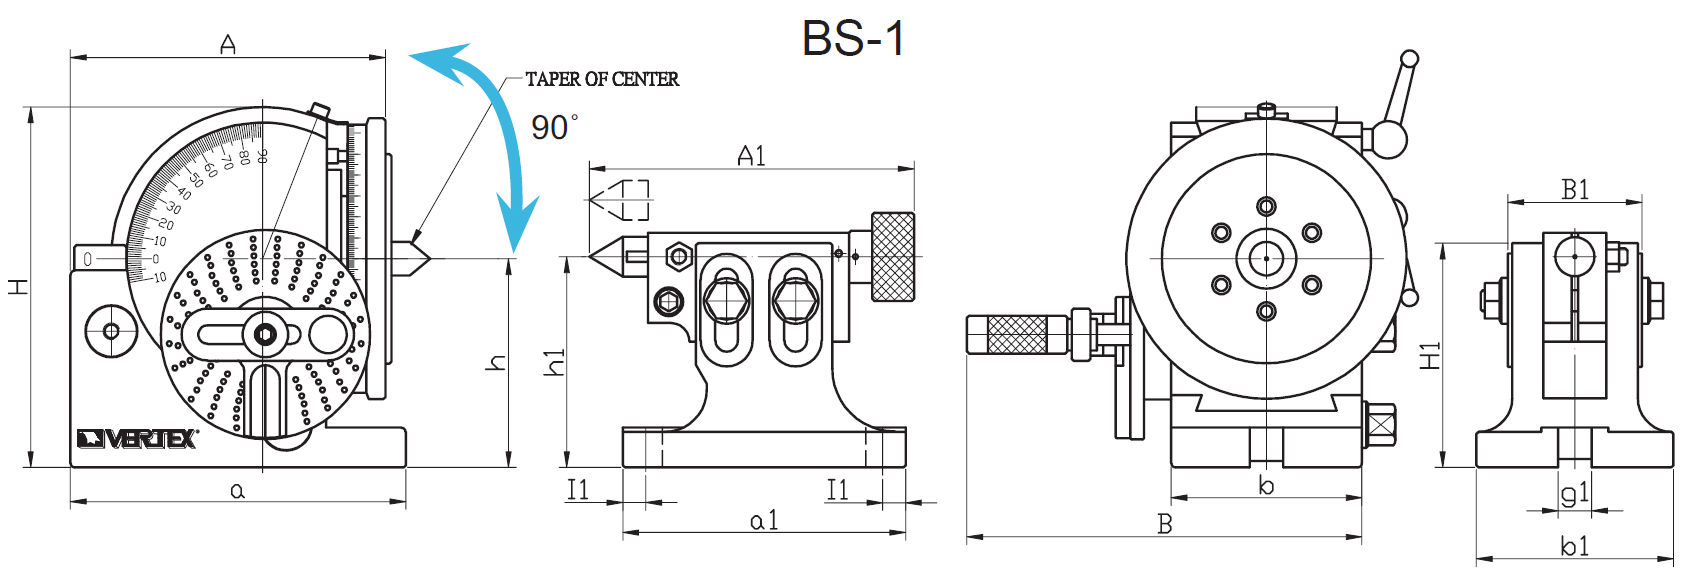 Diagram of BS-1 Semi-Universal Dividing Head, 1001-051